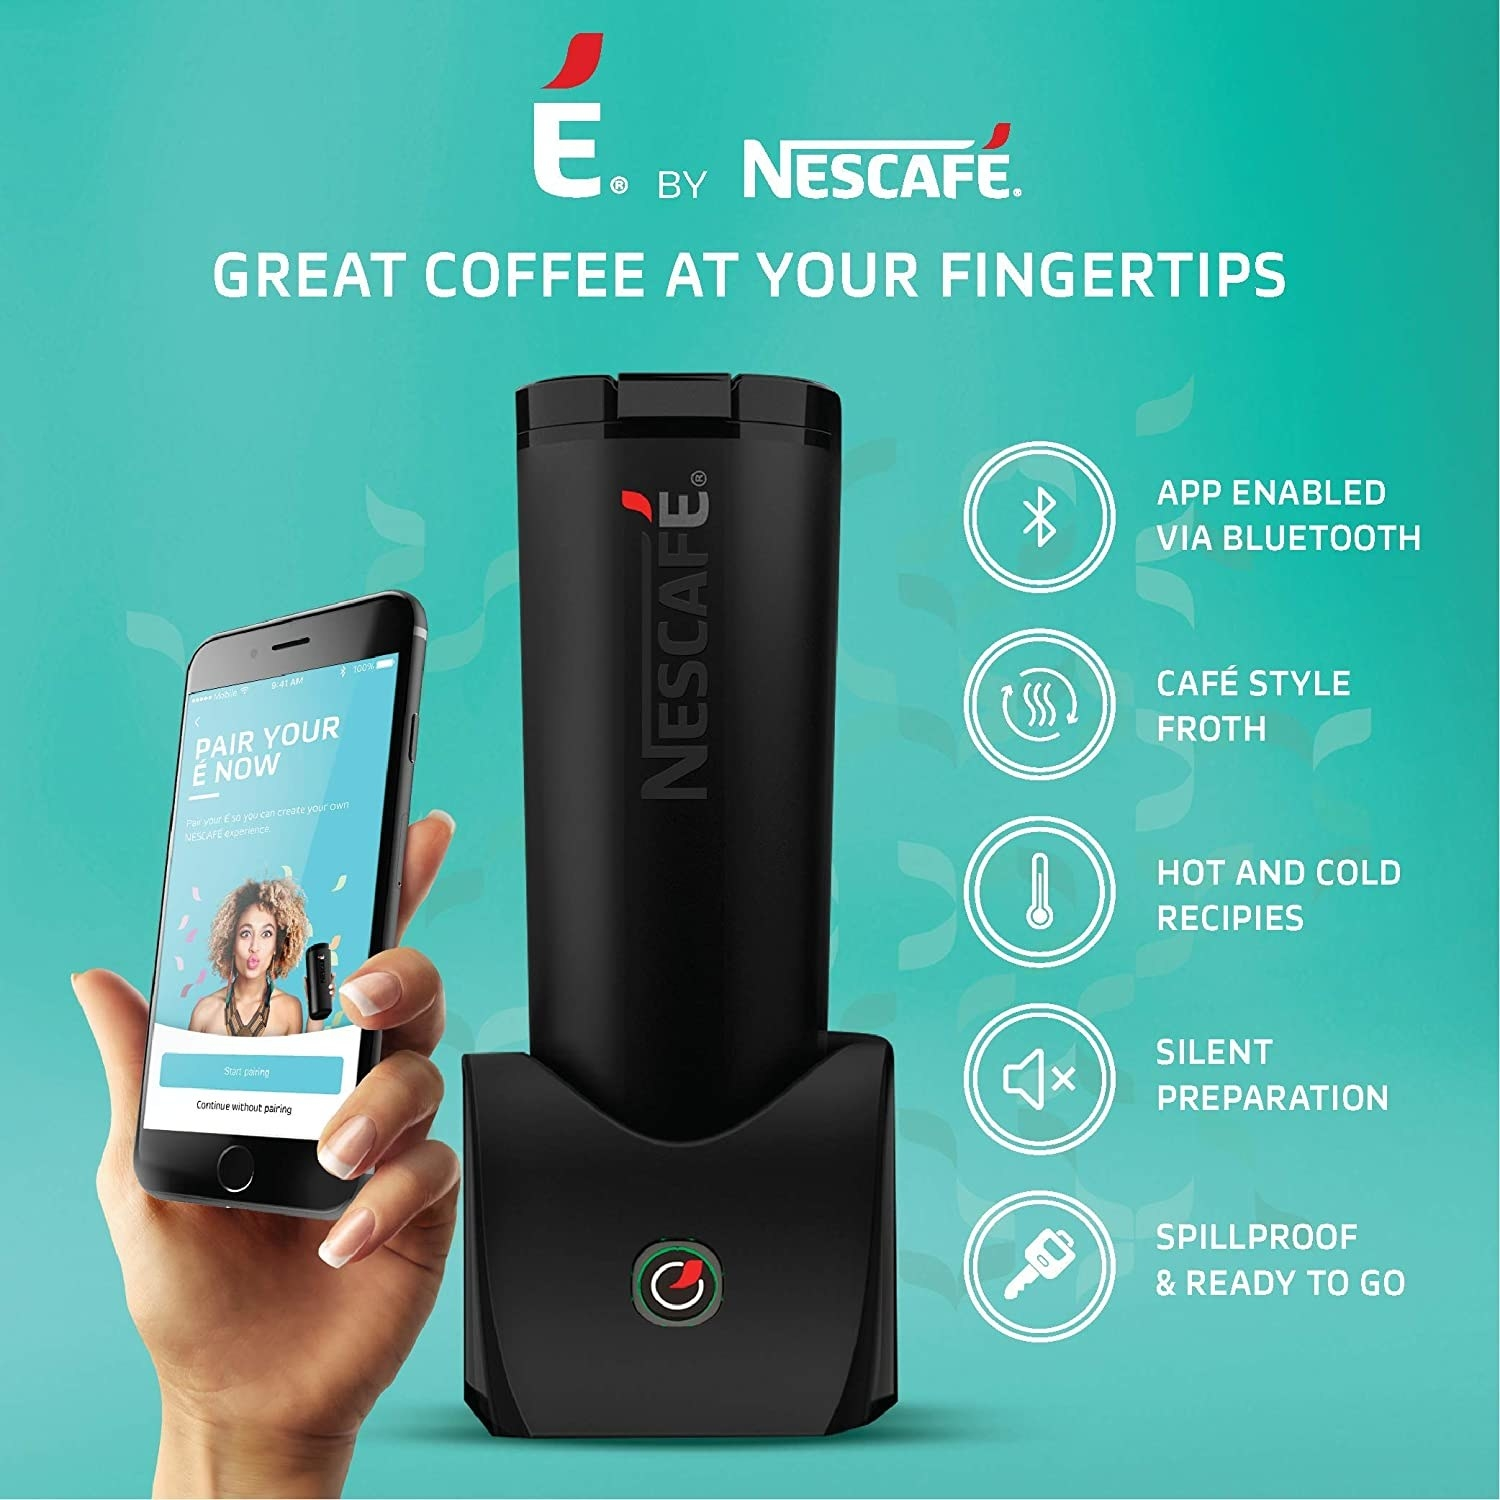 A black Nescafé É Smart Coffee Maker and Travel Mug placed in its dock, with a smartphone shown being paired with it. Its various features are listed alongside.